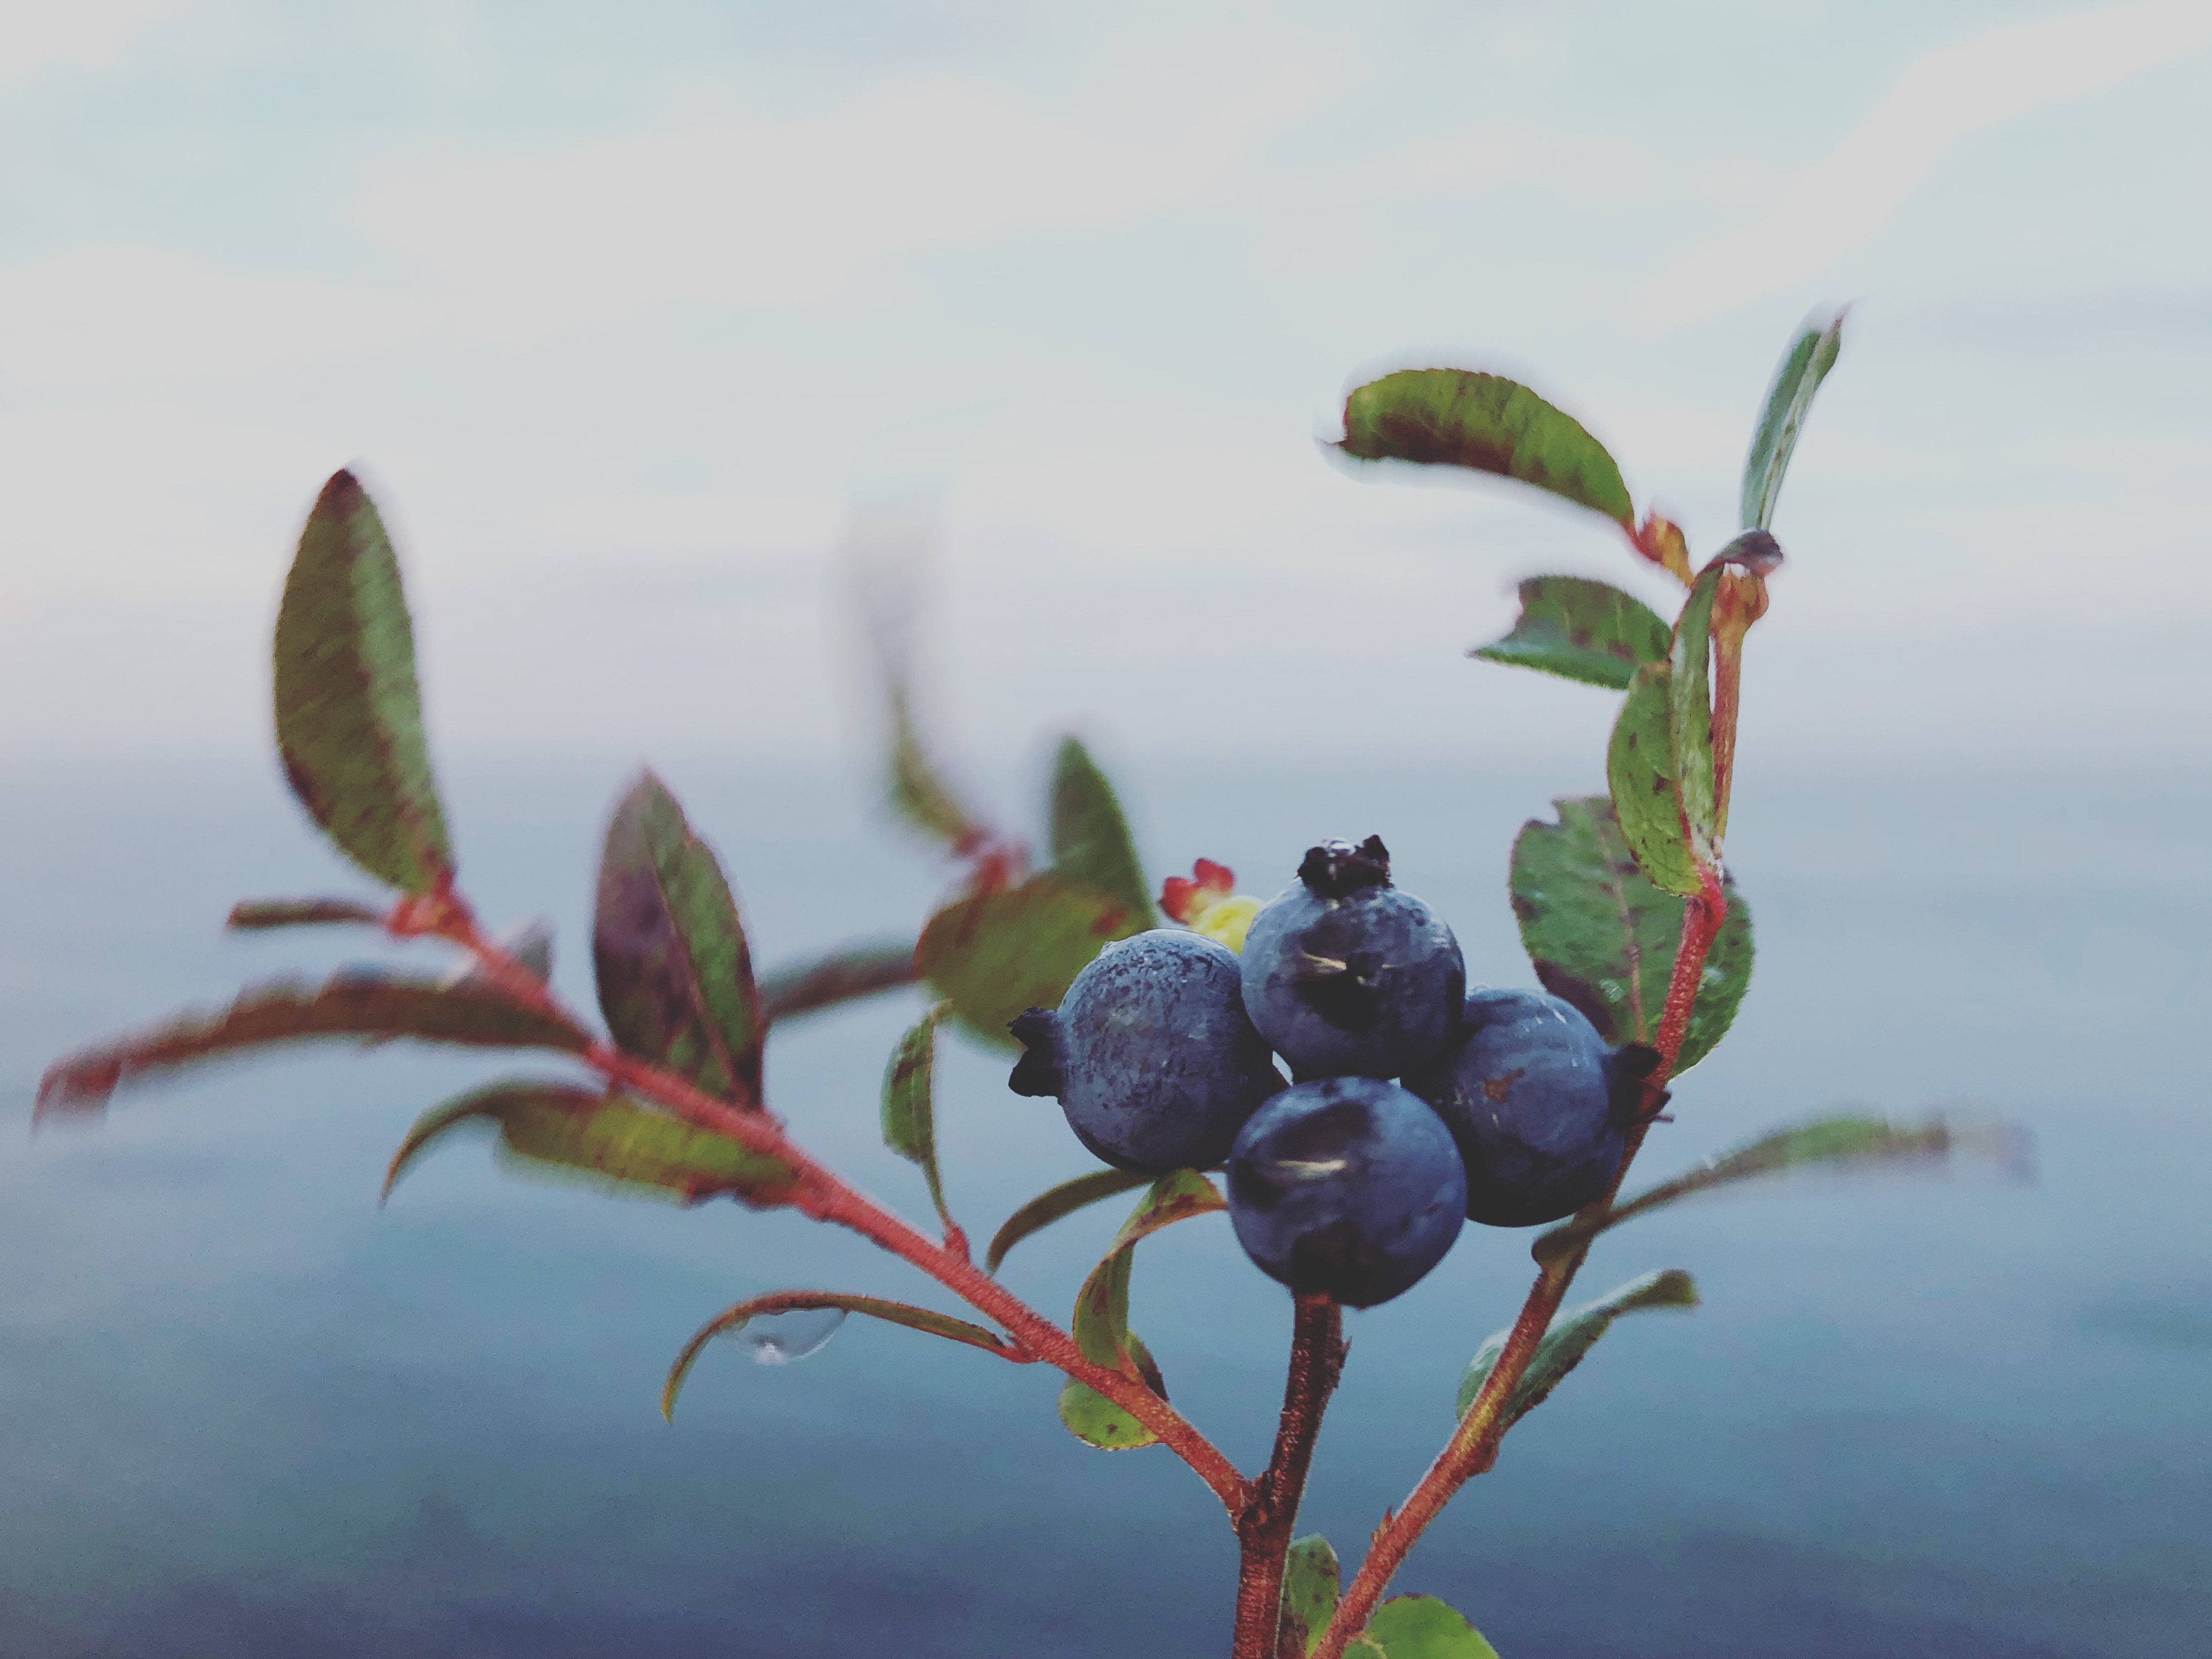 There are more blueberries this season than Rowbottom has seen in recent years. He hopes to double his record of 100 gallons. (Gavin Simms/CBC)